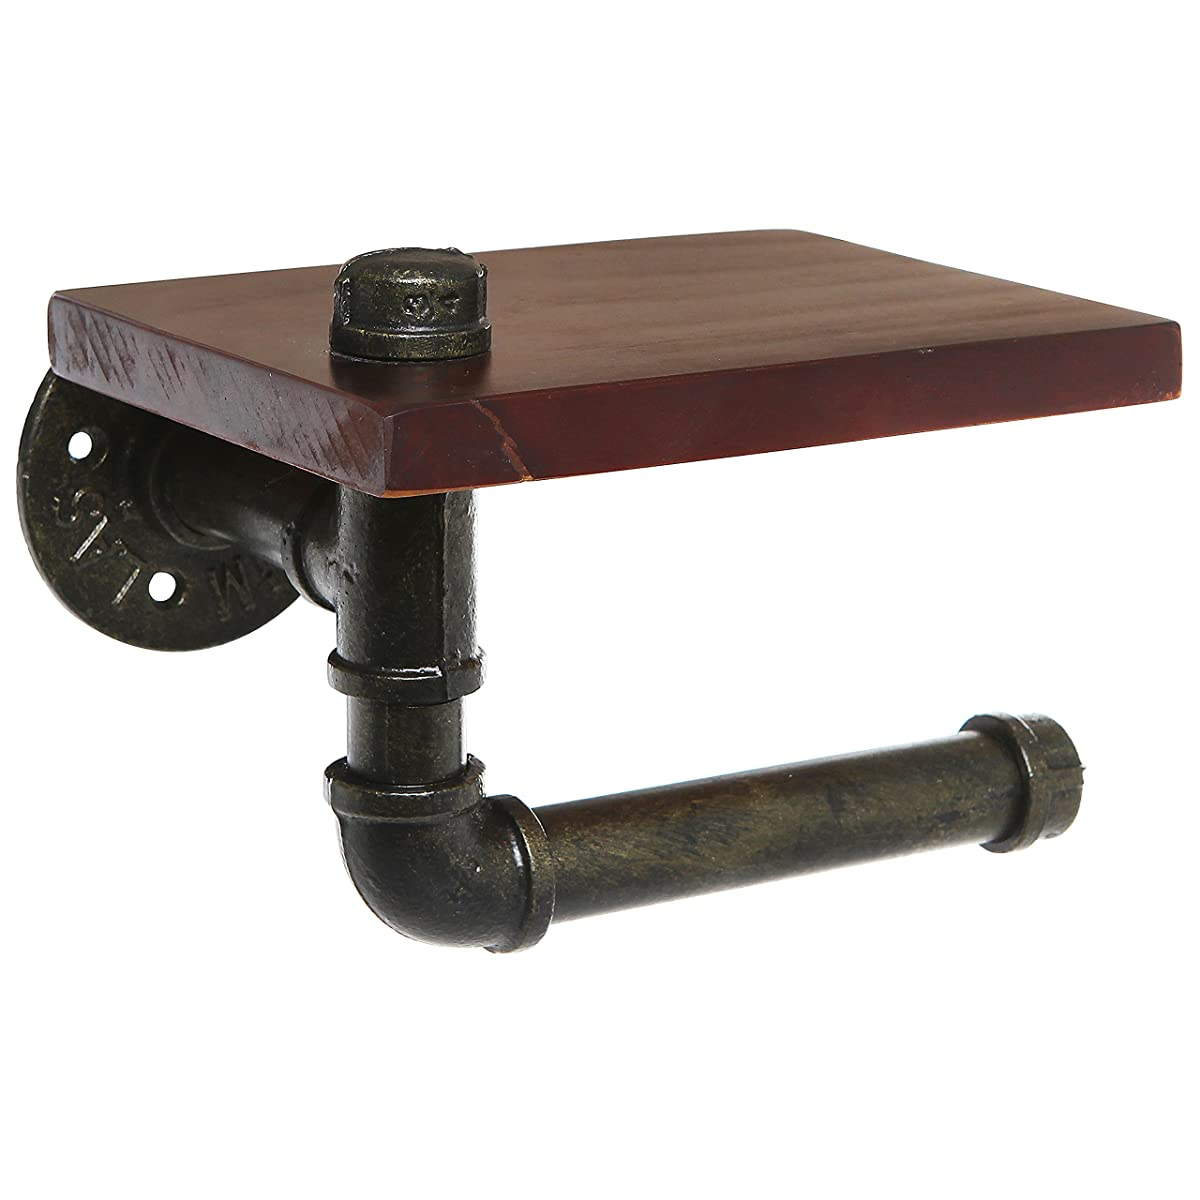 Rustic Style Pipe Design Brown Wood & Black Metal Wall Mounted Bathroom Shelf / Toilet Paper Roll Holder